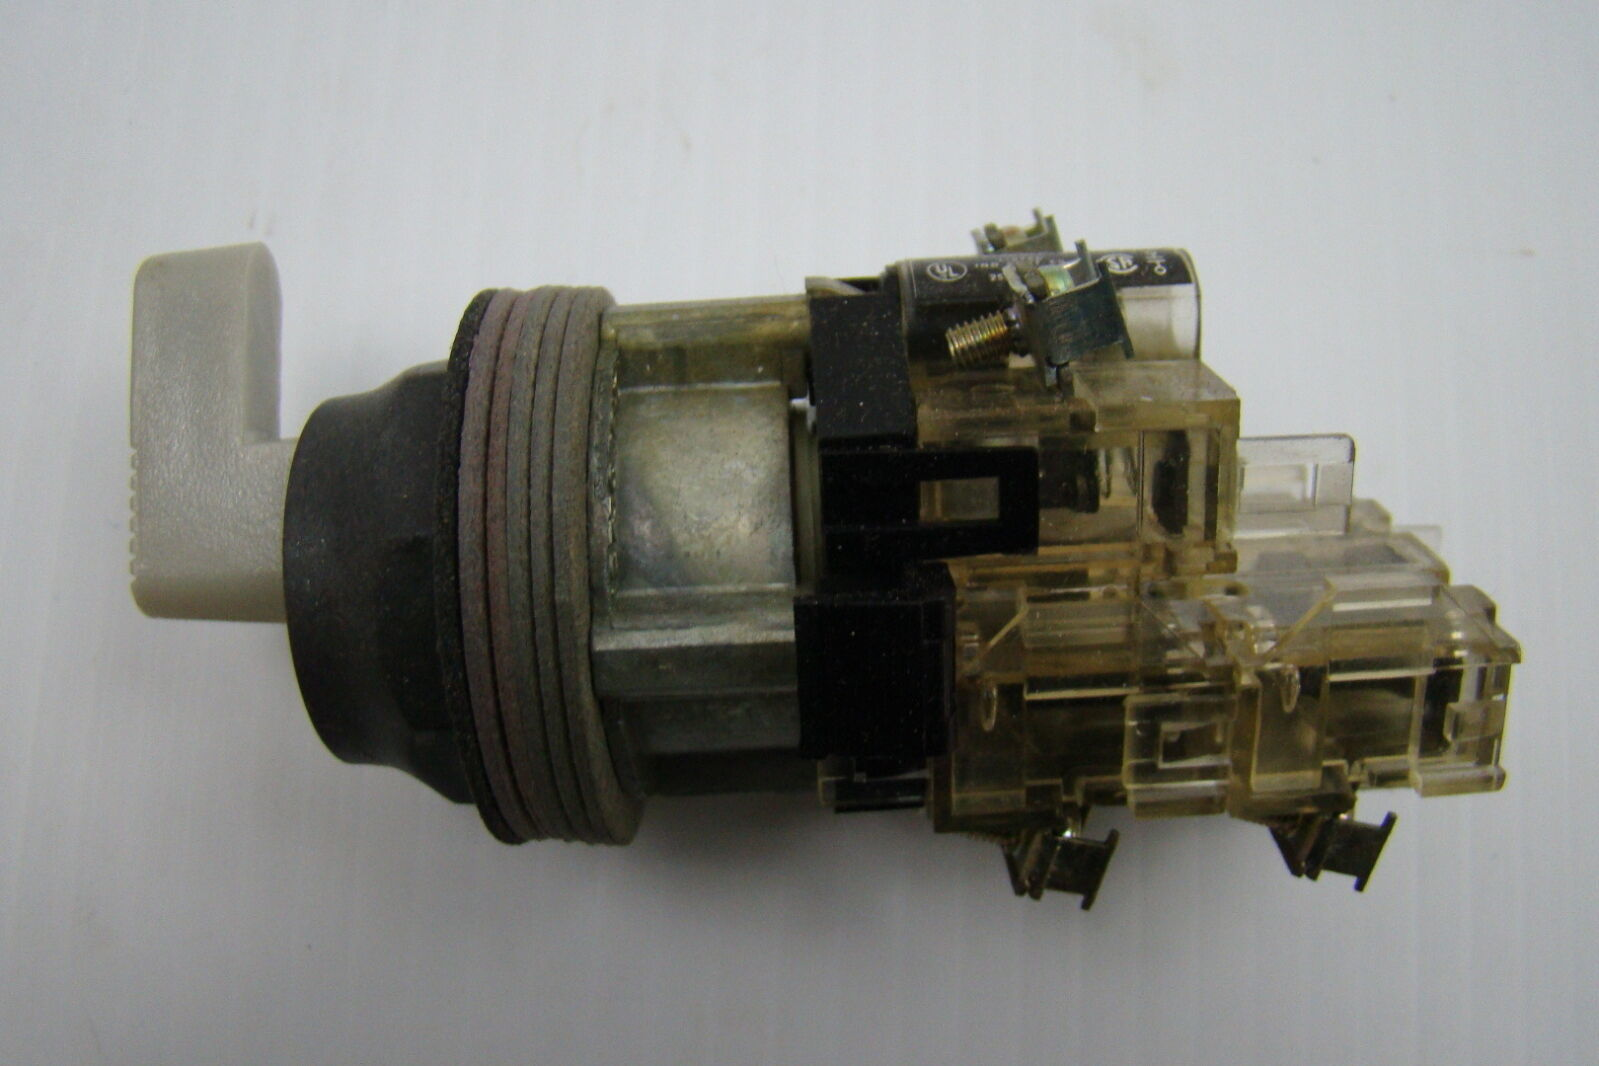 Ingersoll rand air compressors electrical switch 39115951 for Ingersoll rand air compressor electric motor